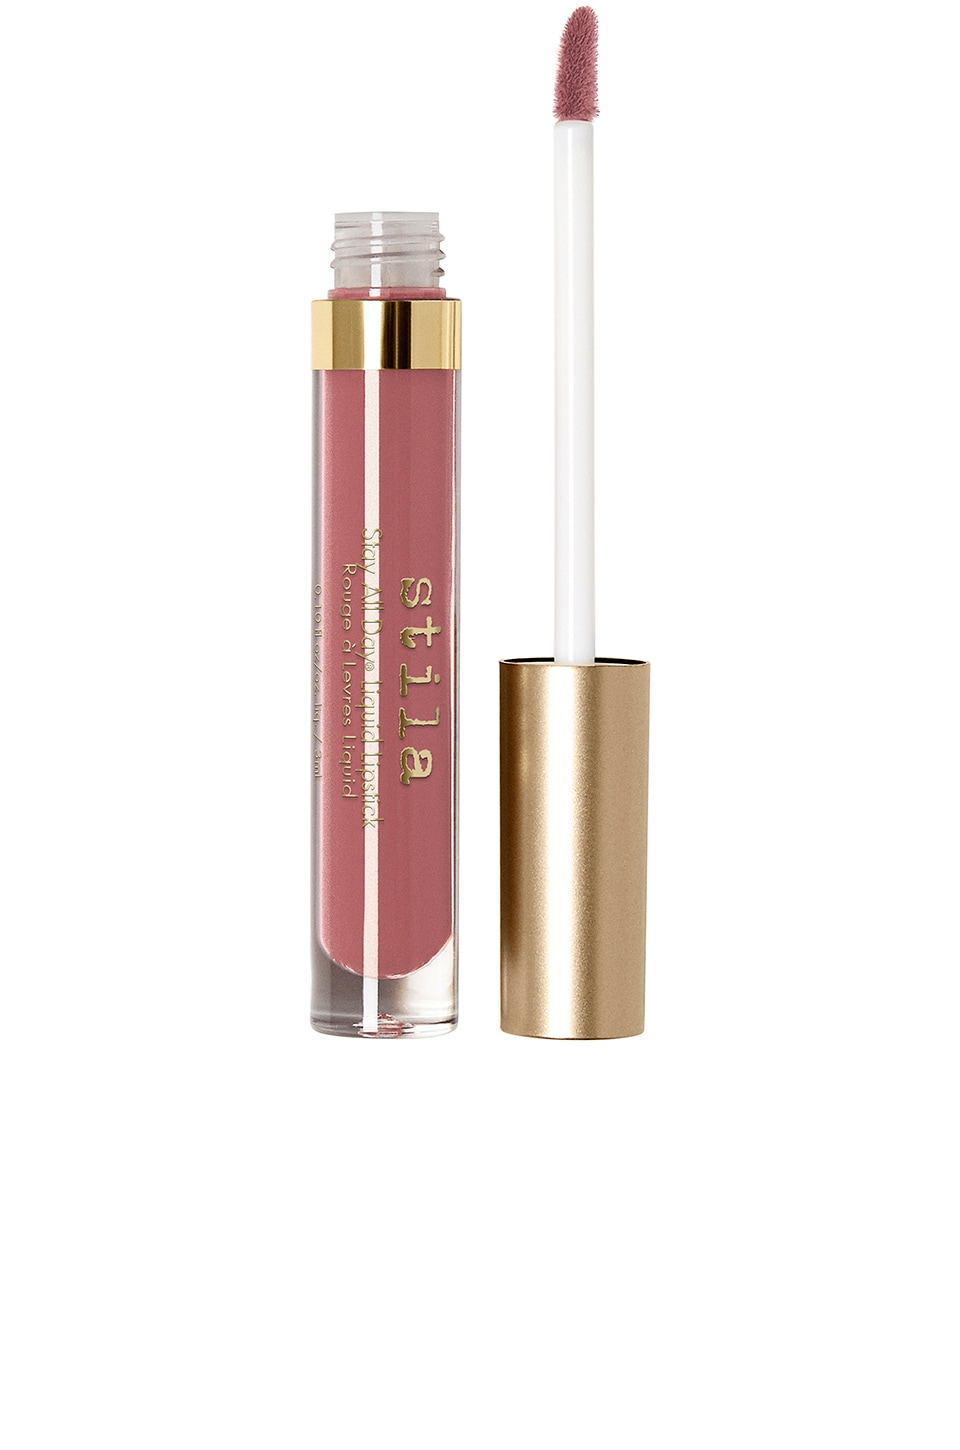 Stila Stay All Day Liquid Lipstick in Portofino